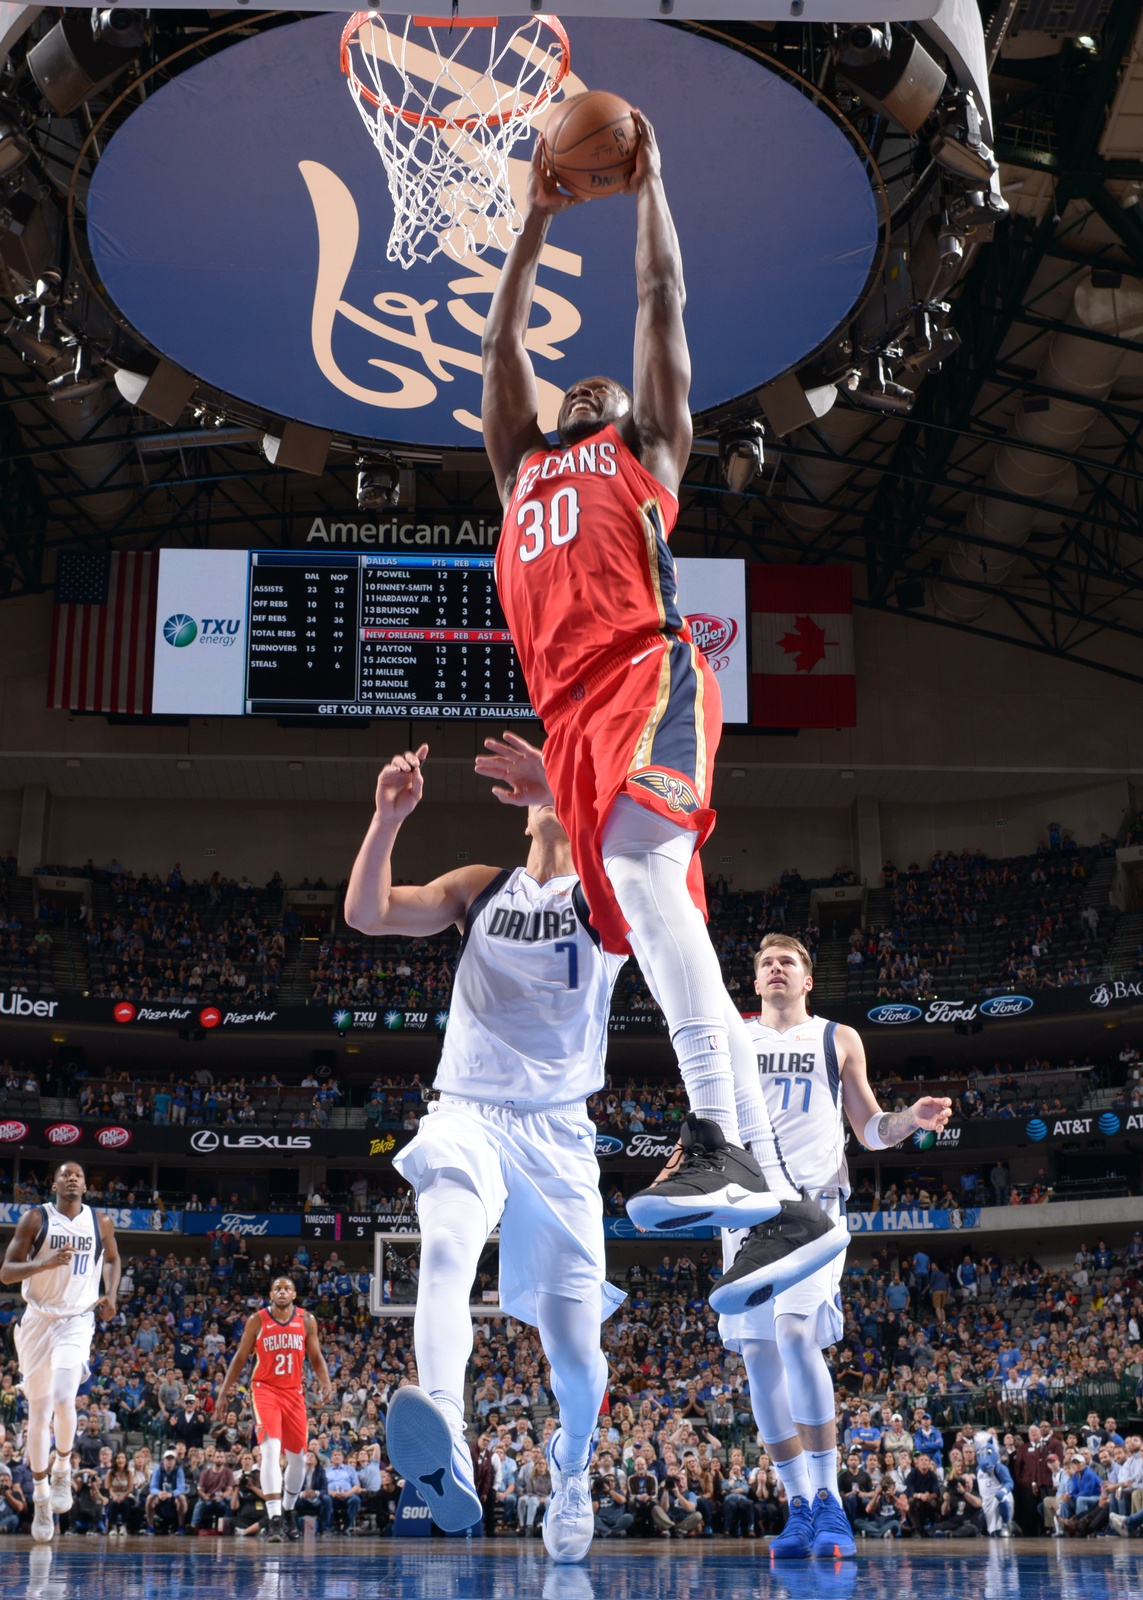 Julius Randle #30 of the New Orleans Pelicans dunks against the Dallas Mavericks on March 18, 2019 at the American Airlines Center in Dallas, Texas.